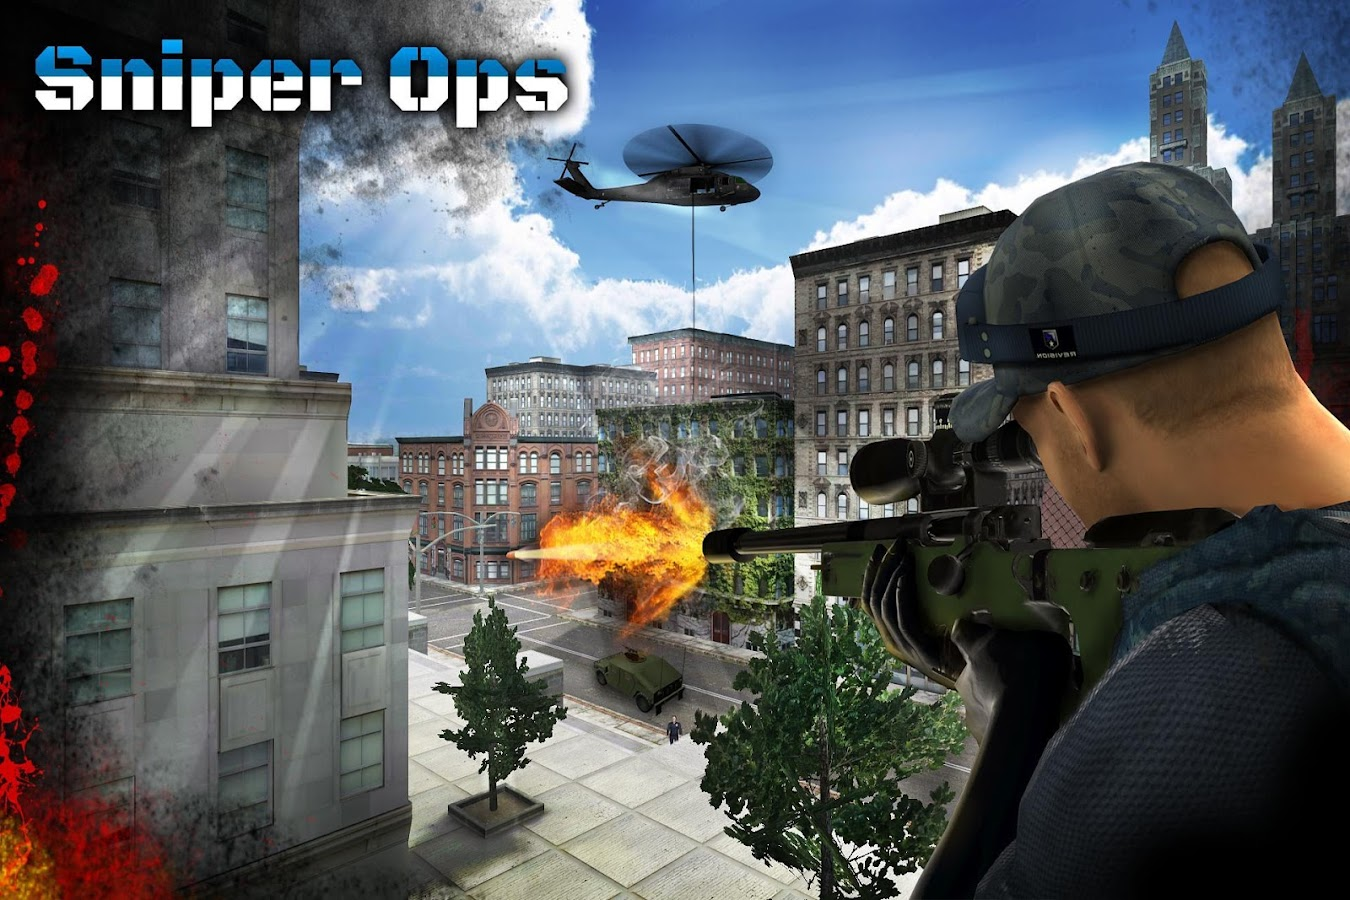 Sniper ops 3d shooting game android apps on google play